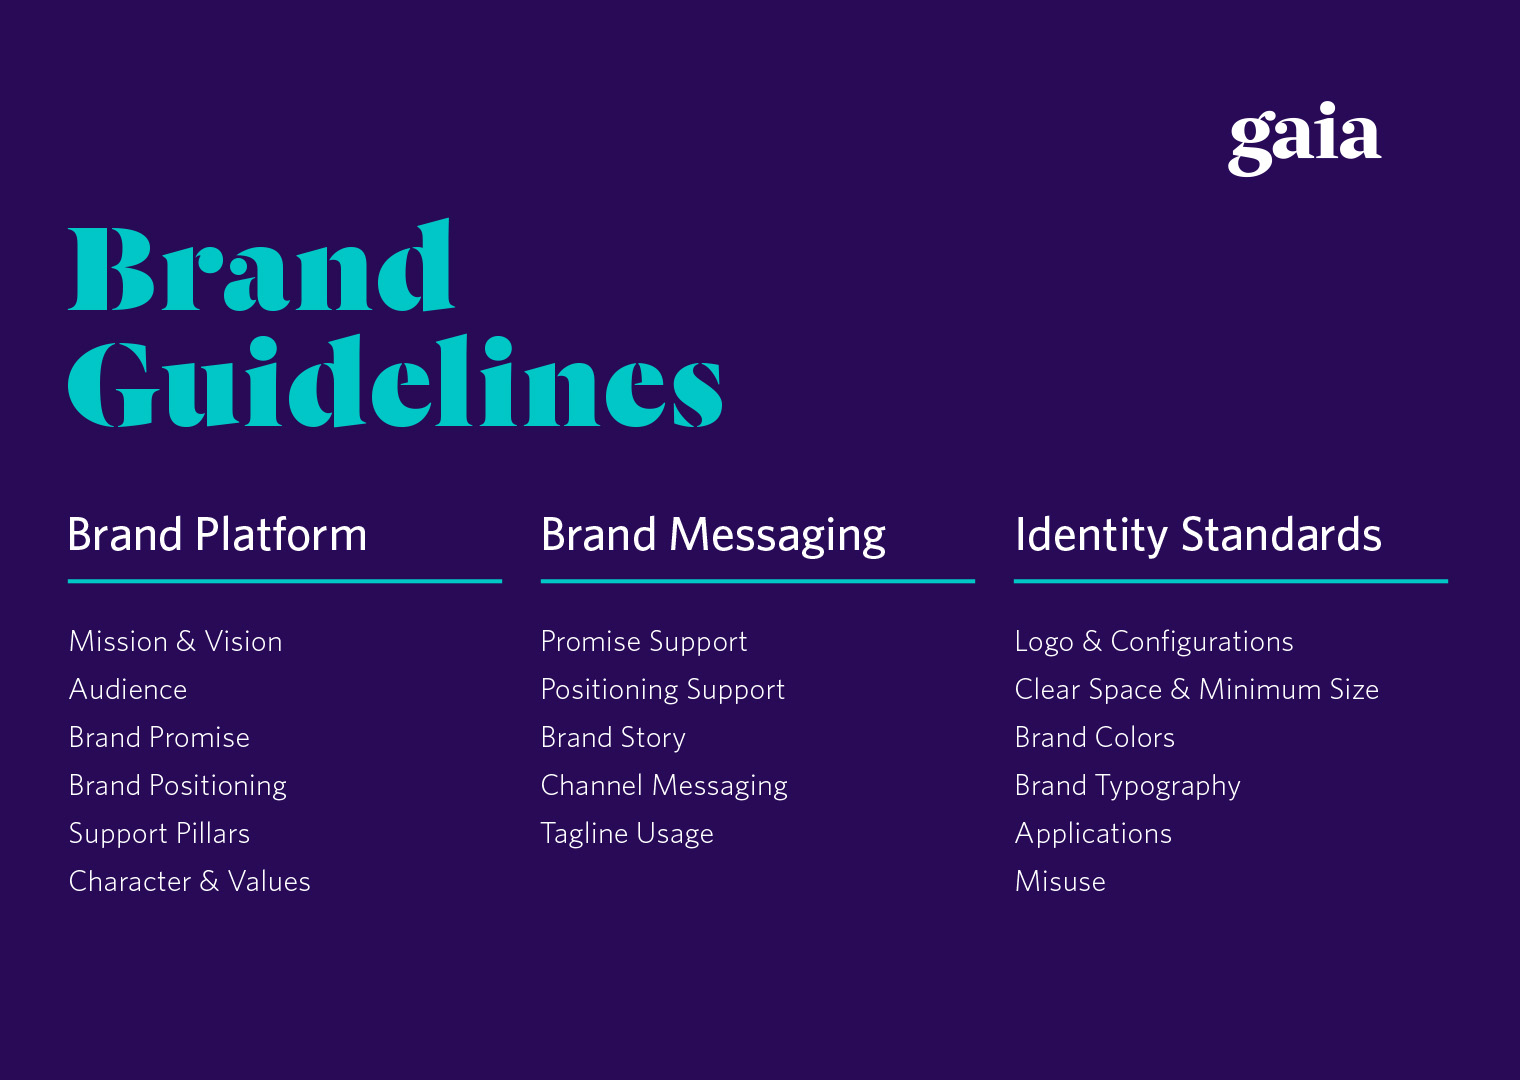 Gaia brand guidelines